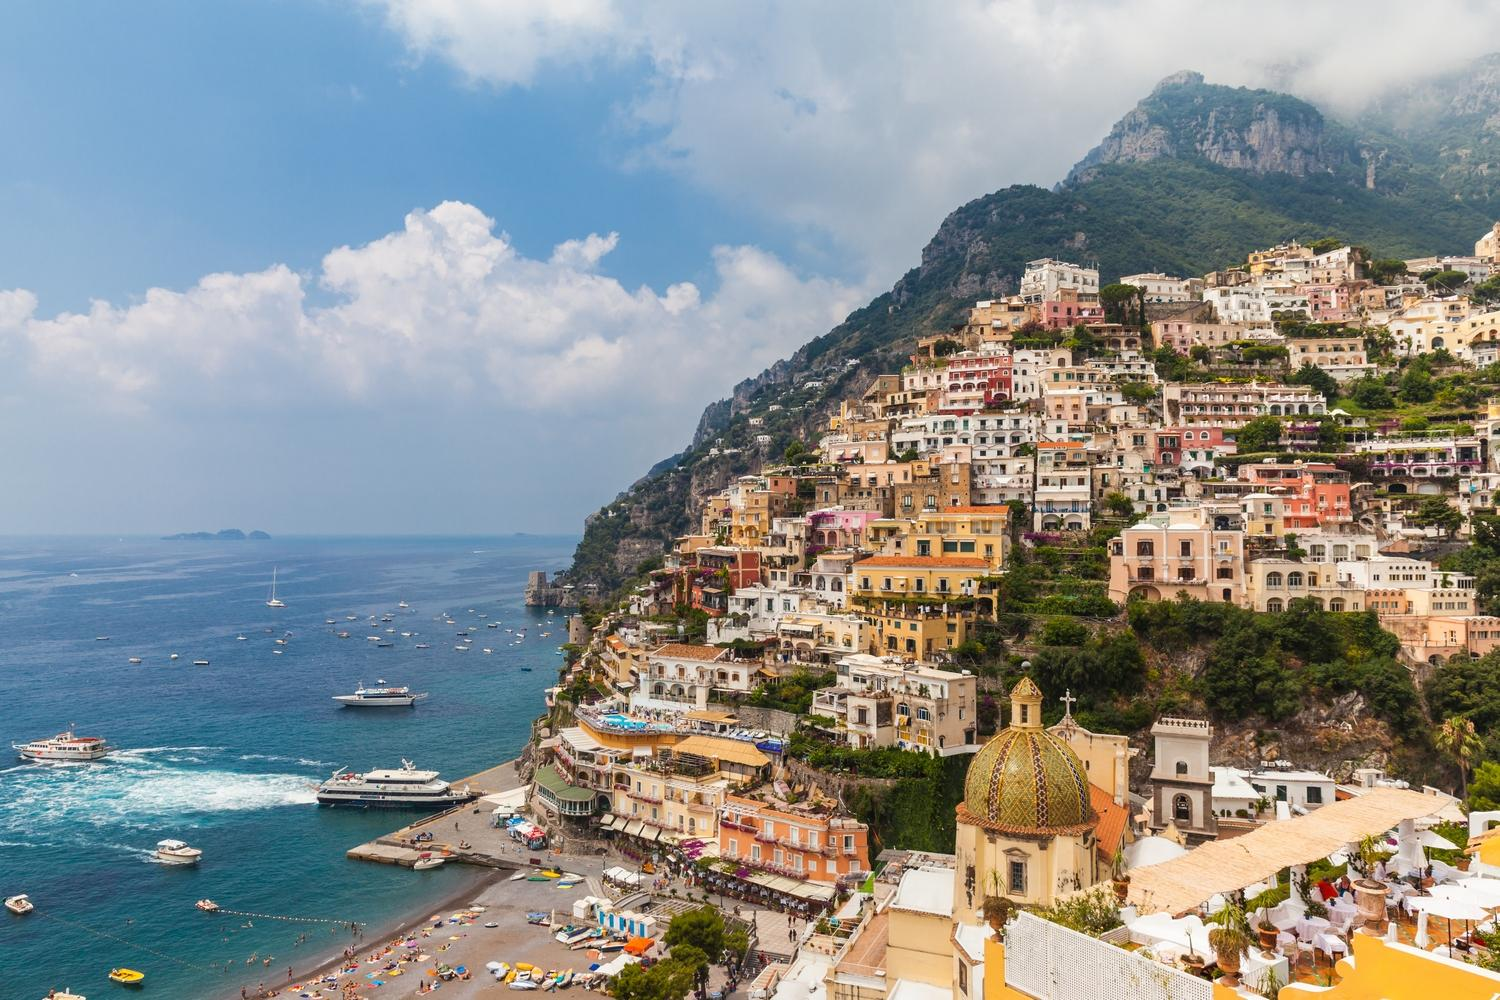 Positano, the Pink Town of Italy